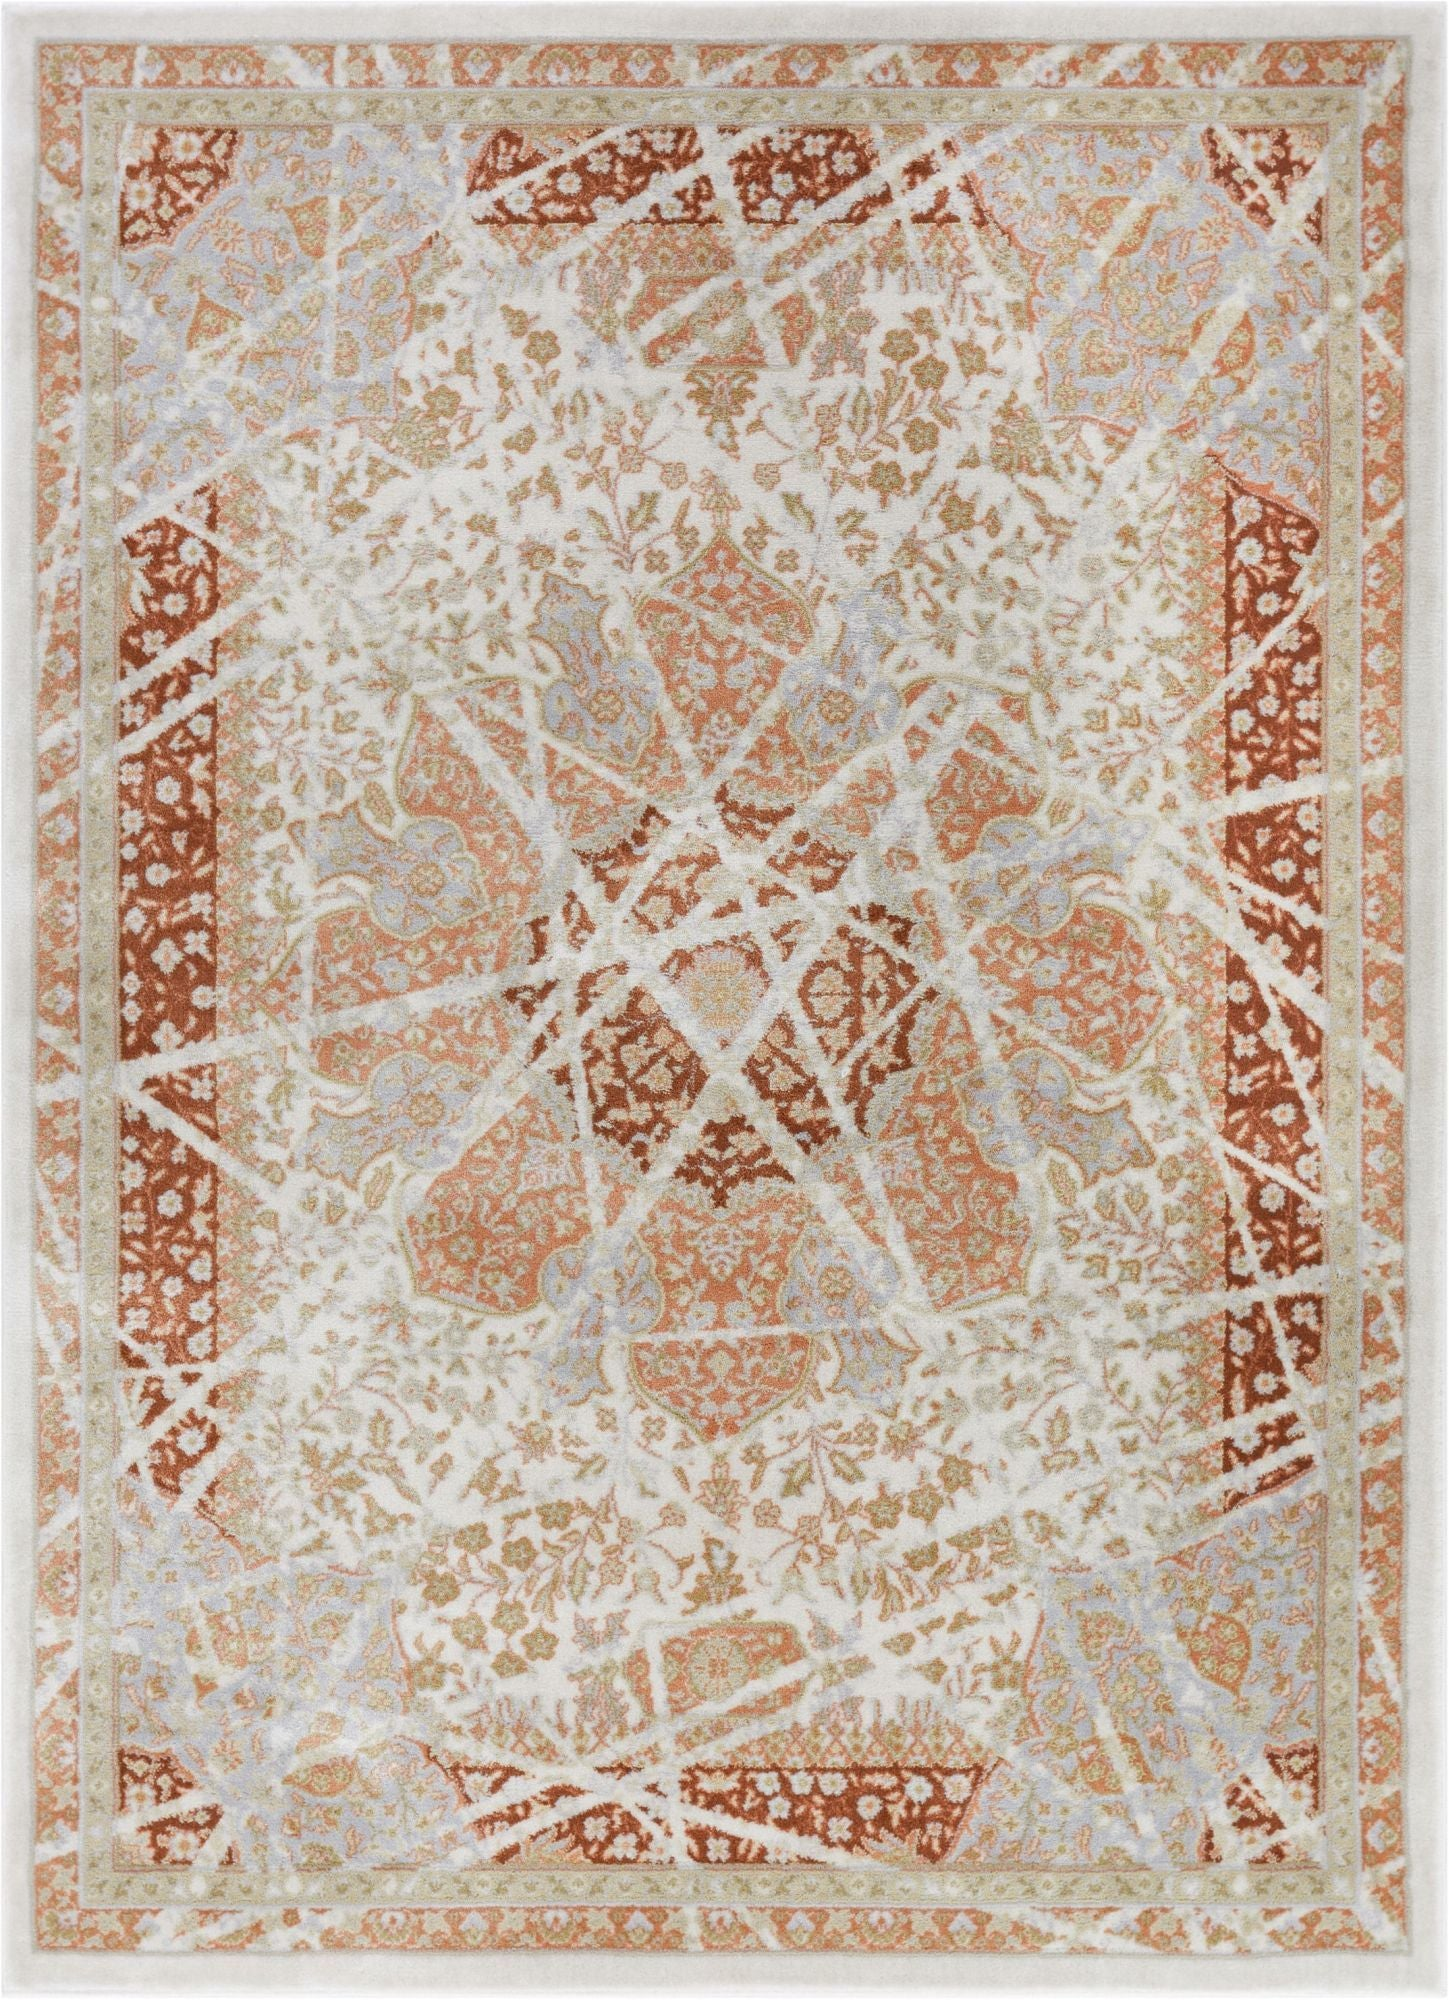 Marco Copper Vintage Rug Well Woven